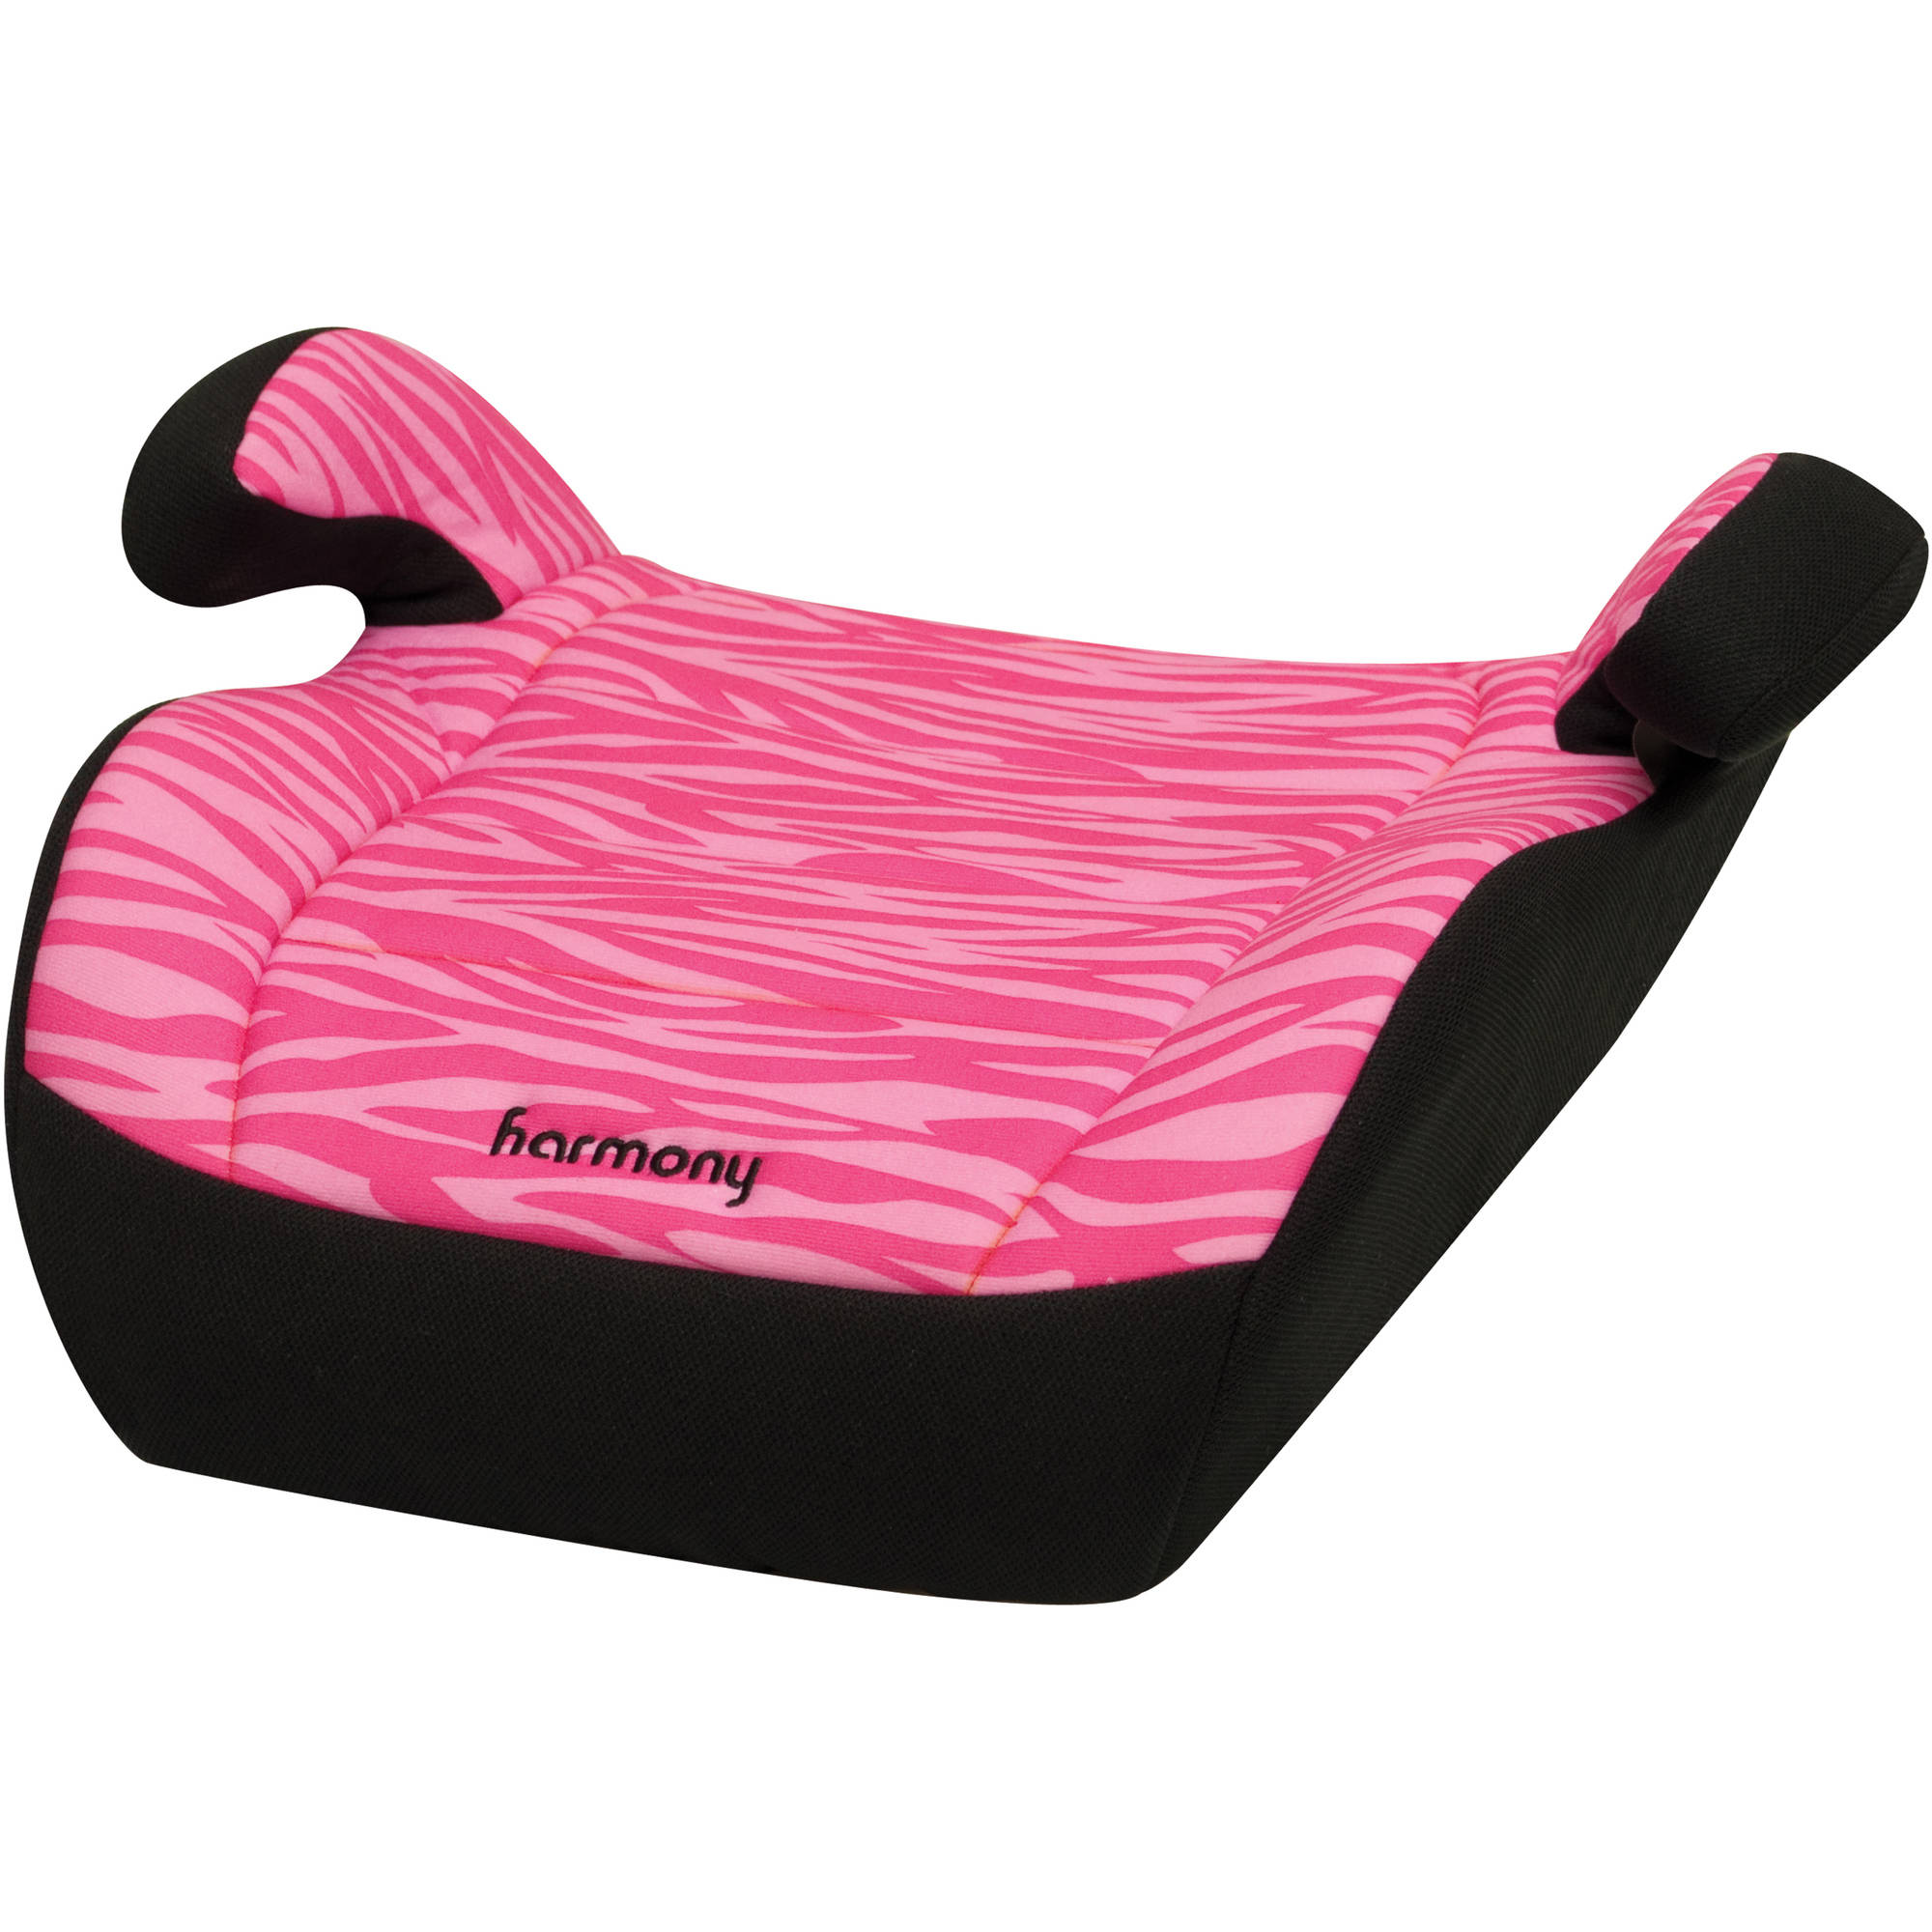 Backless Booster Car Seat Portable for 4